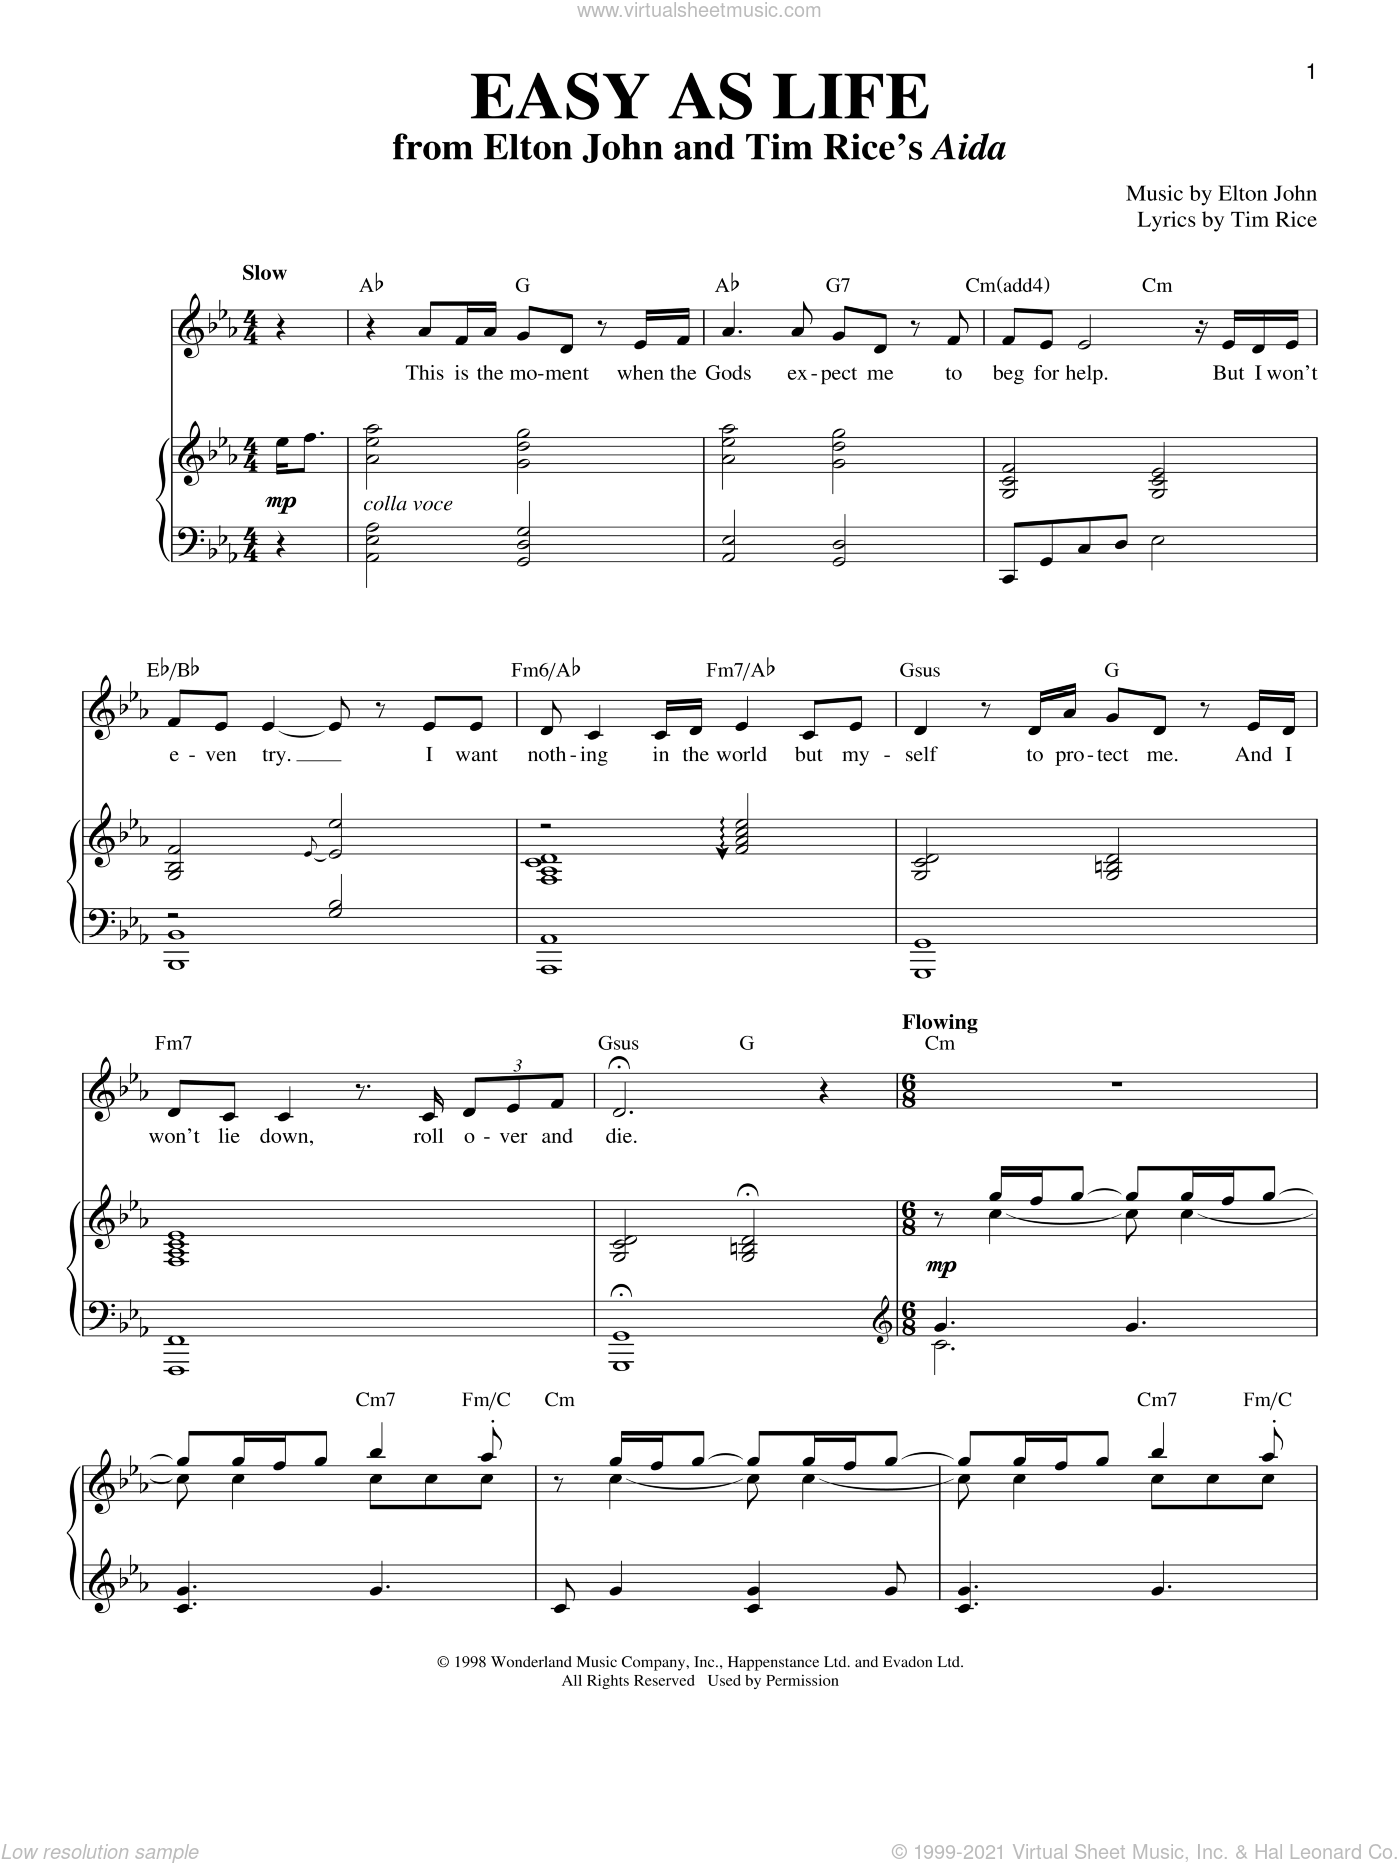 Easy As Life sheet music for voice and piano by Elton John